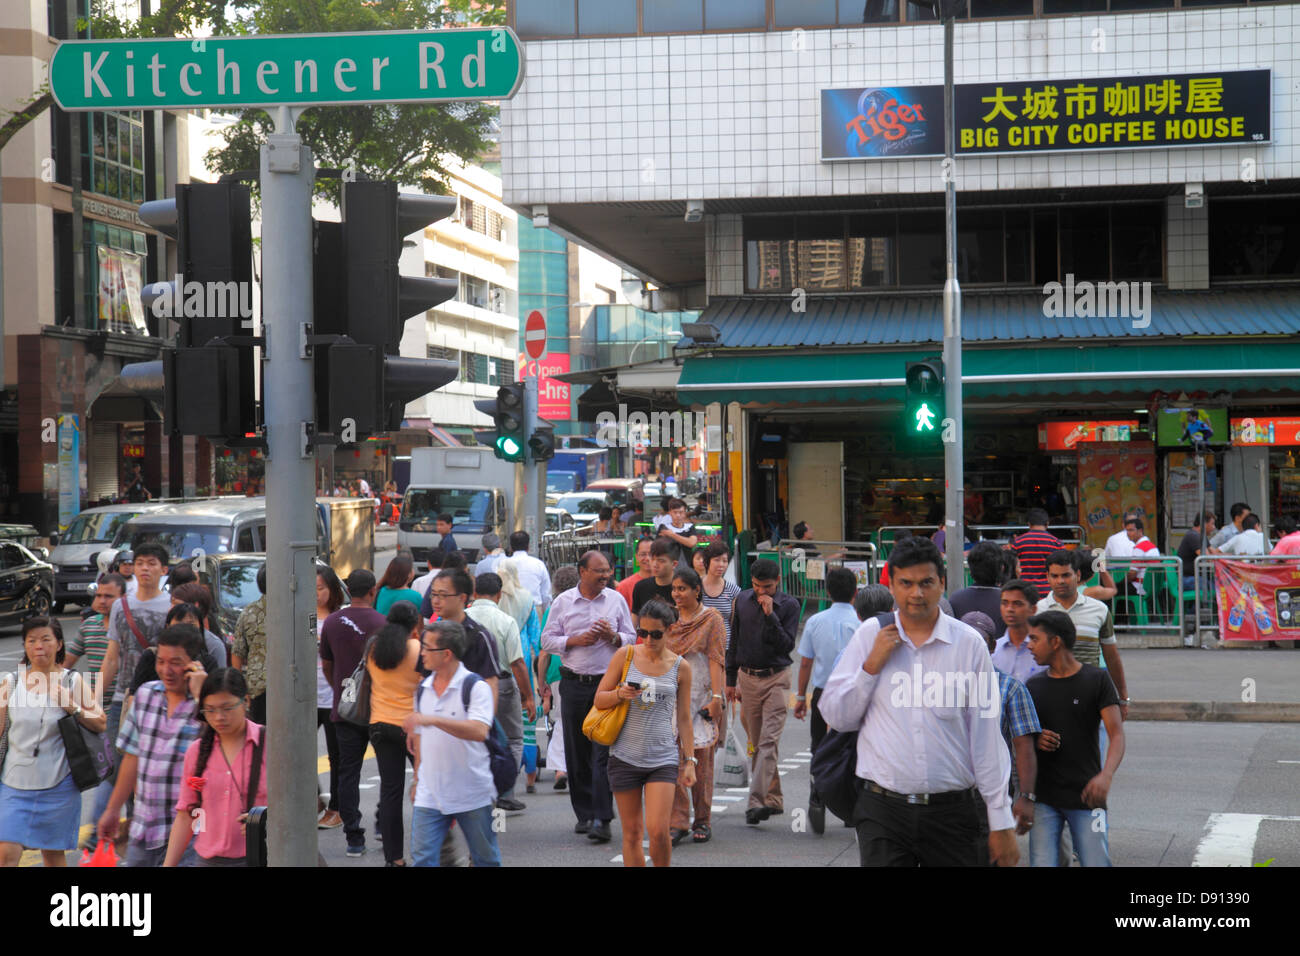 Singapore little india kitchener road asian man woman pedestrian crossing hanzi characters chinese language stock